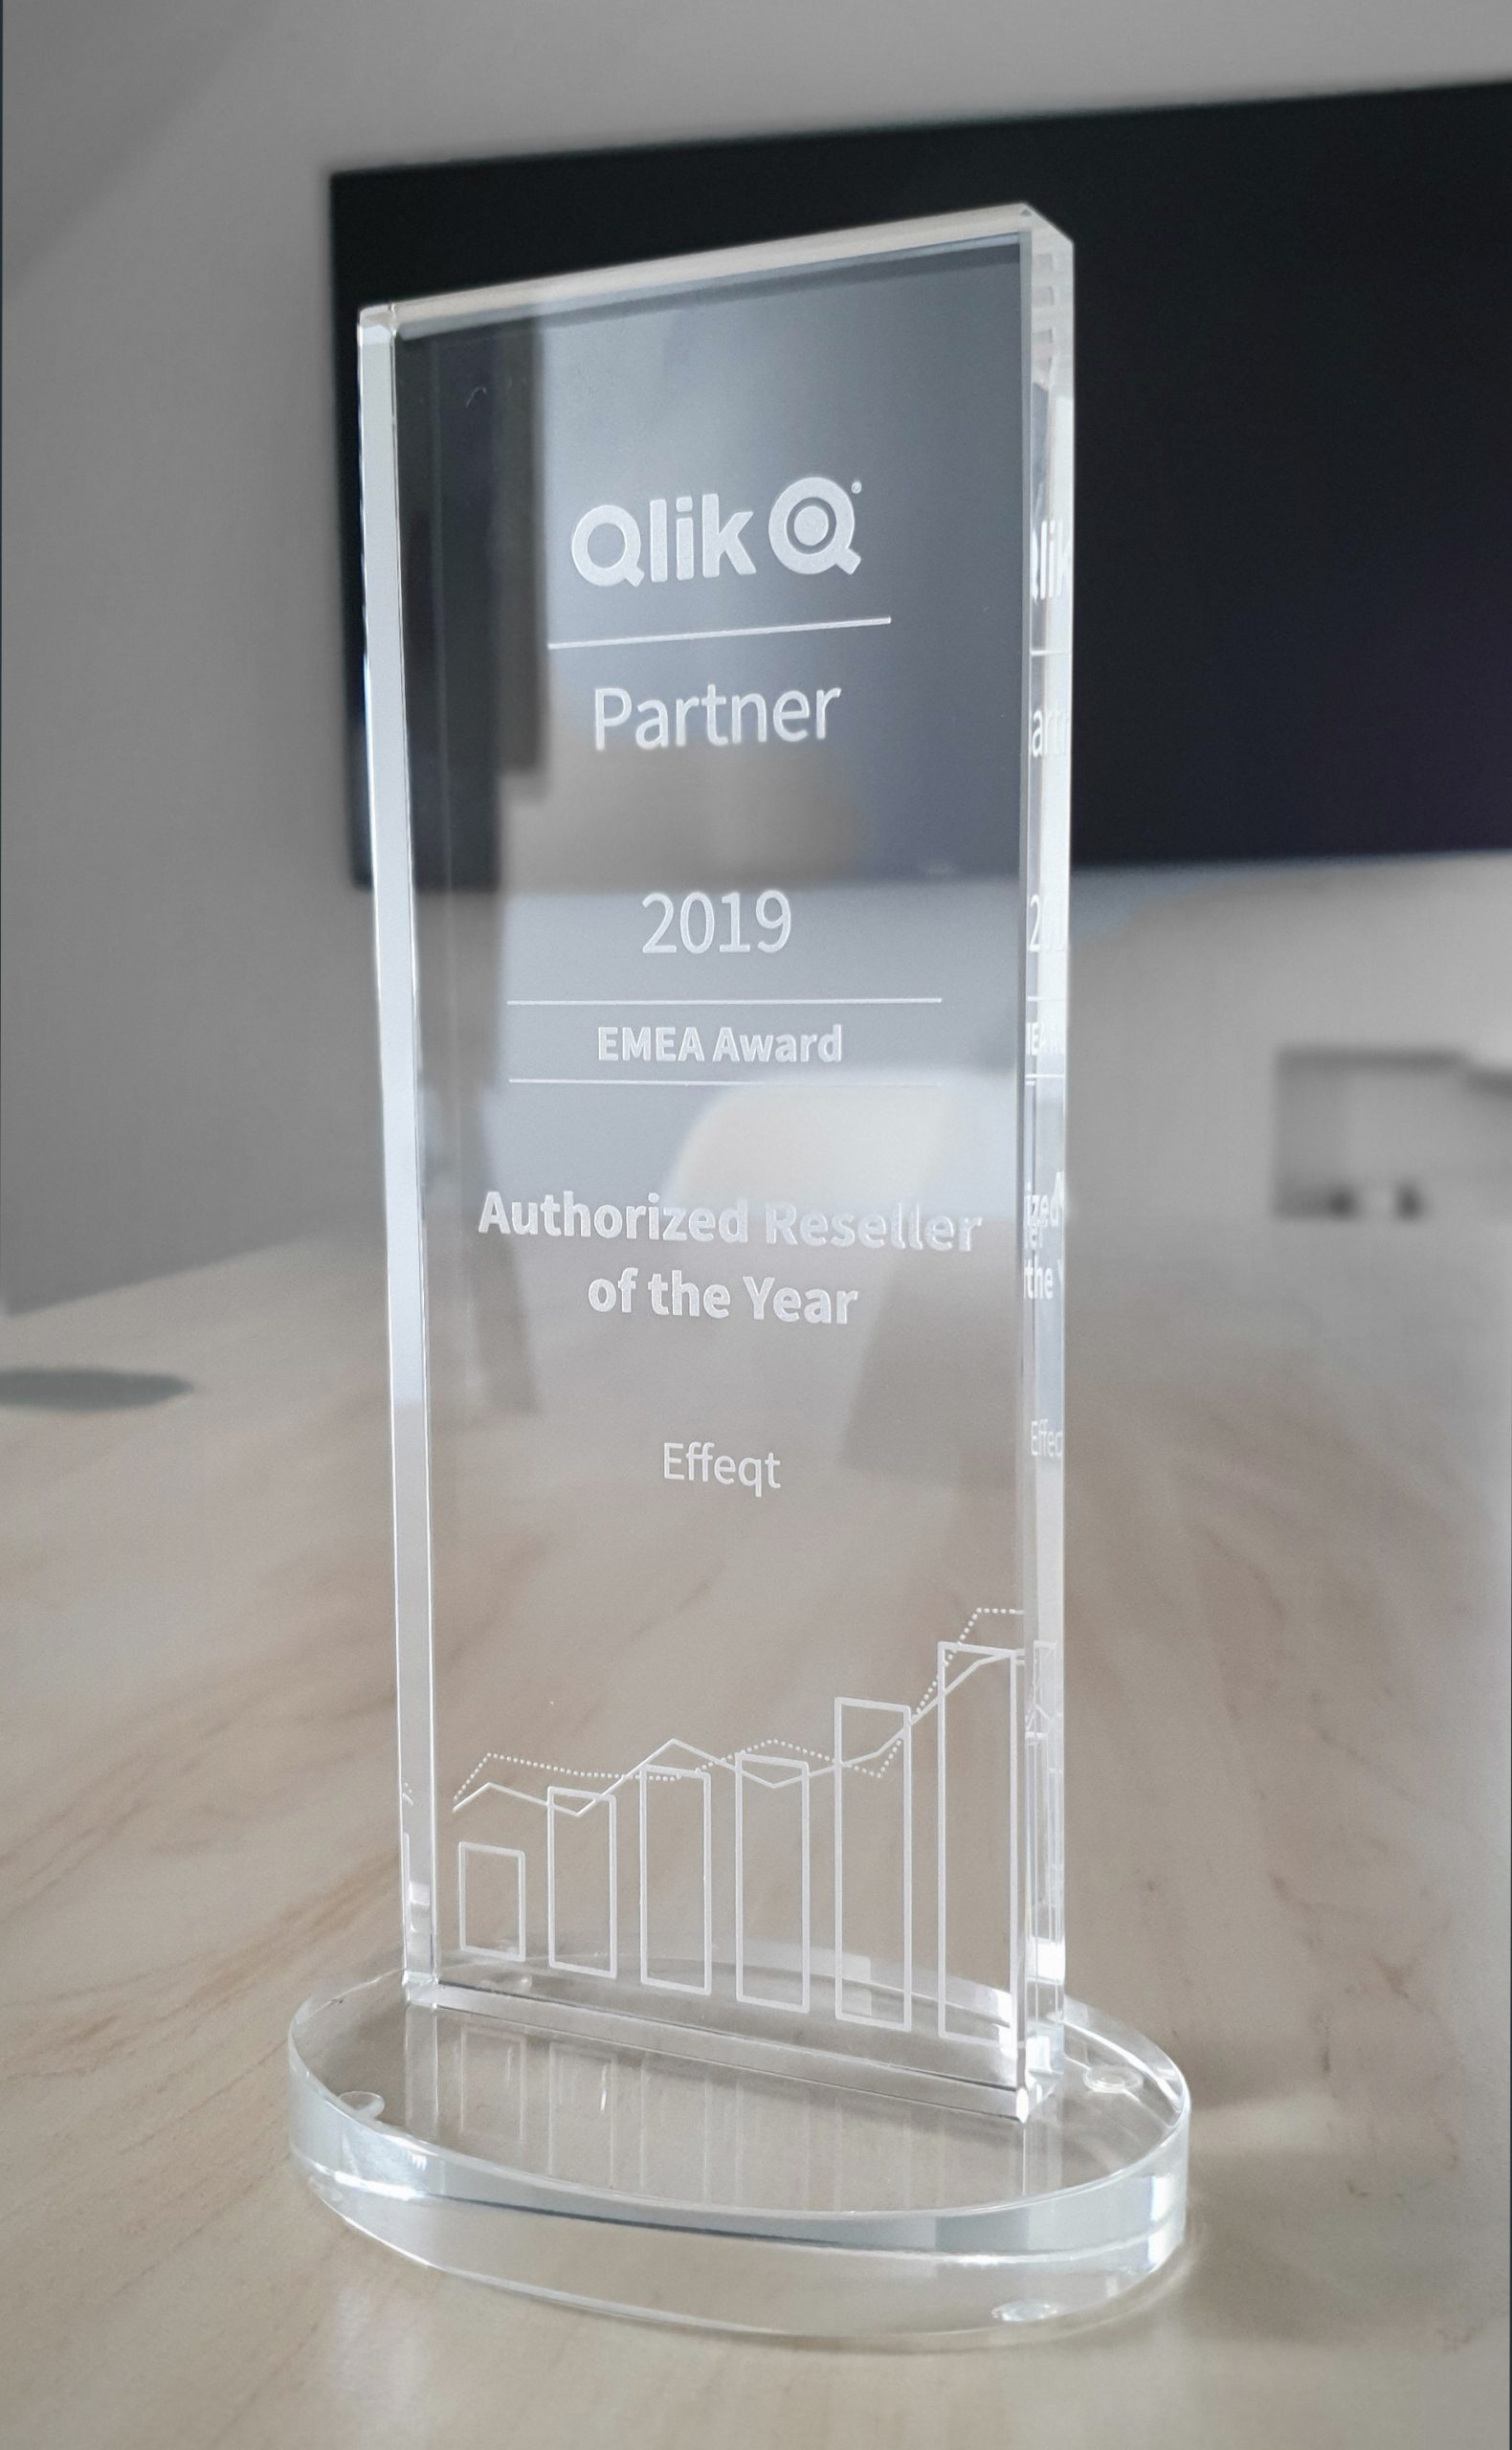 Der Pokal als reseller of the year